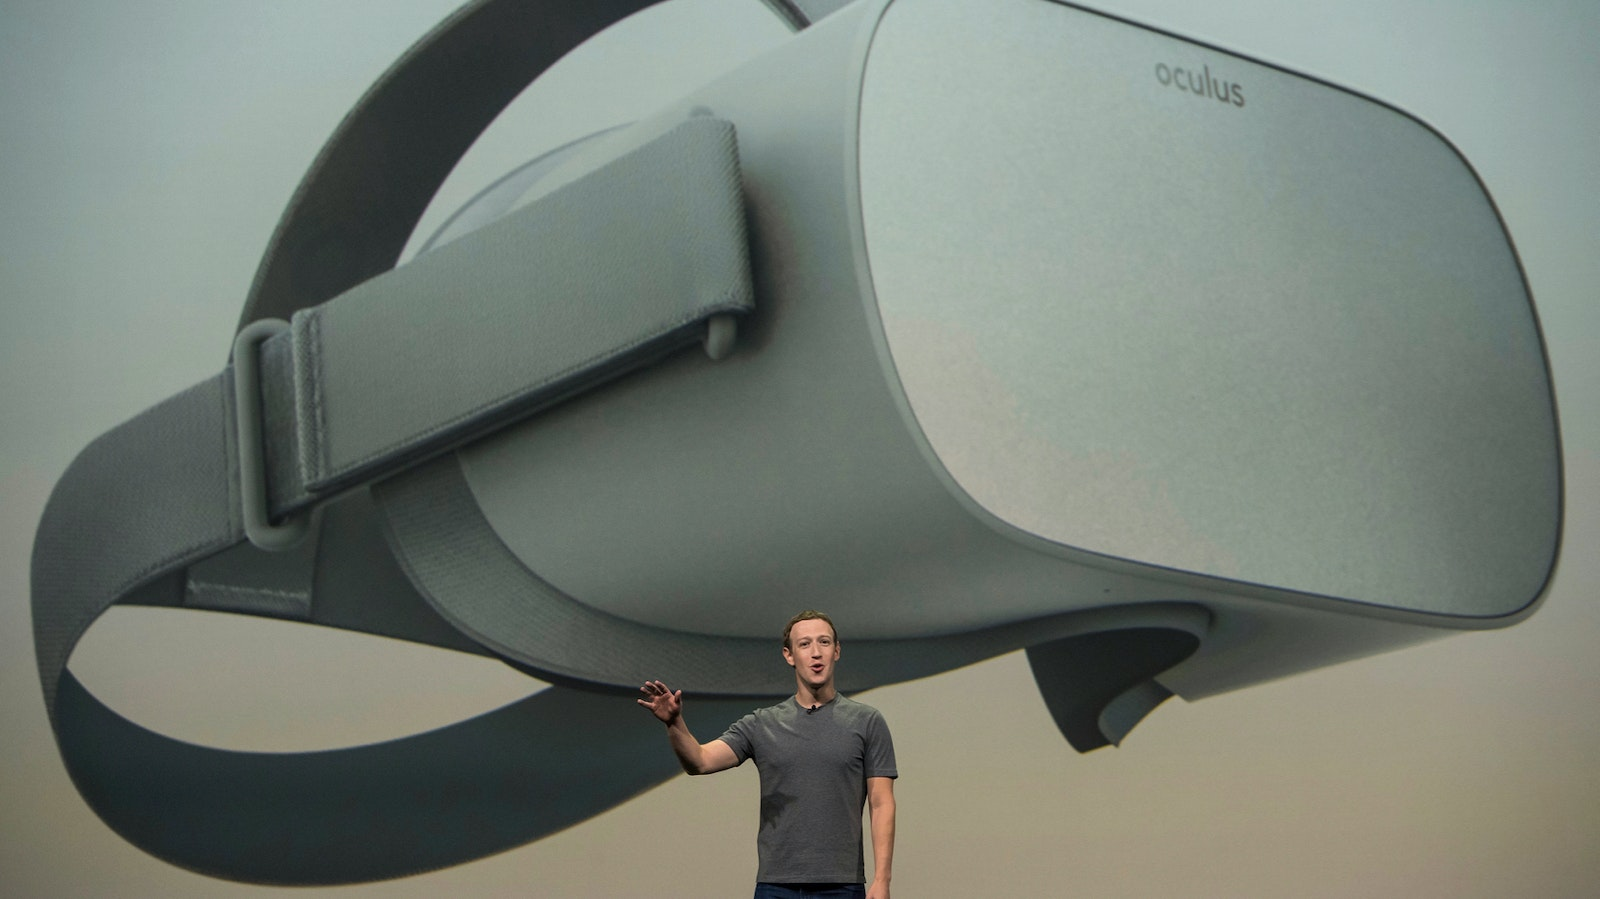 Mark Zuckerberg, CEO of Facebook, speaks at an Oculus event last year. Photo by Bloomberg